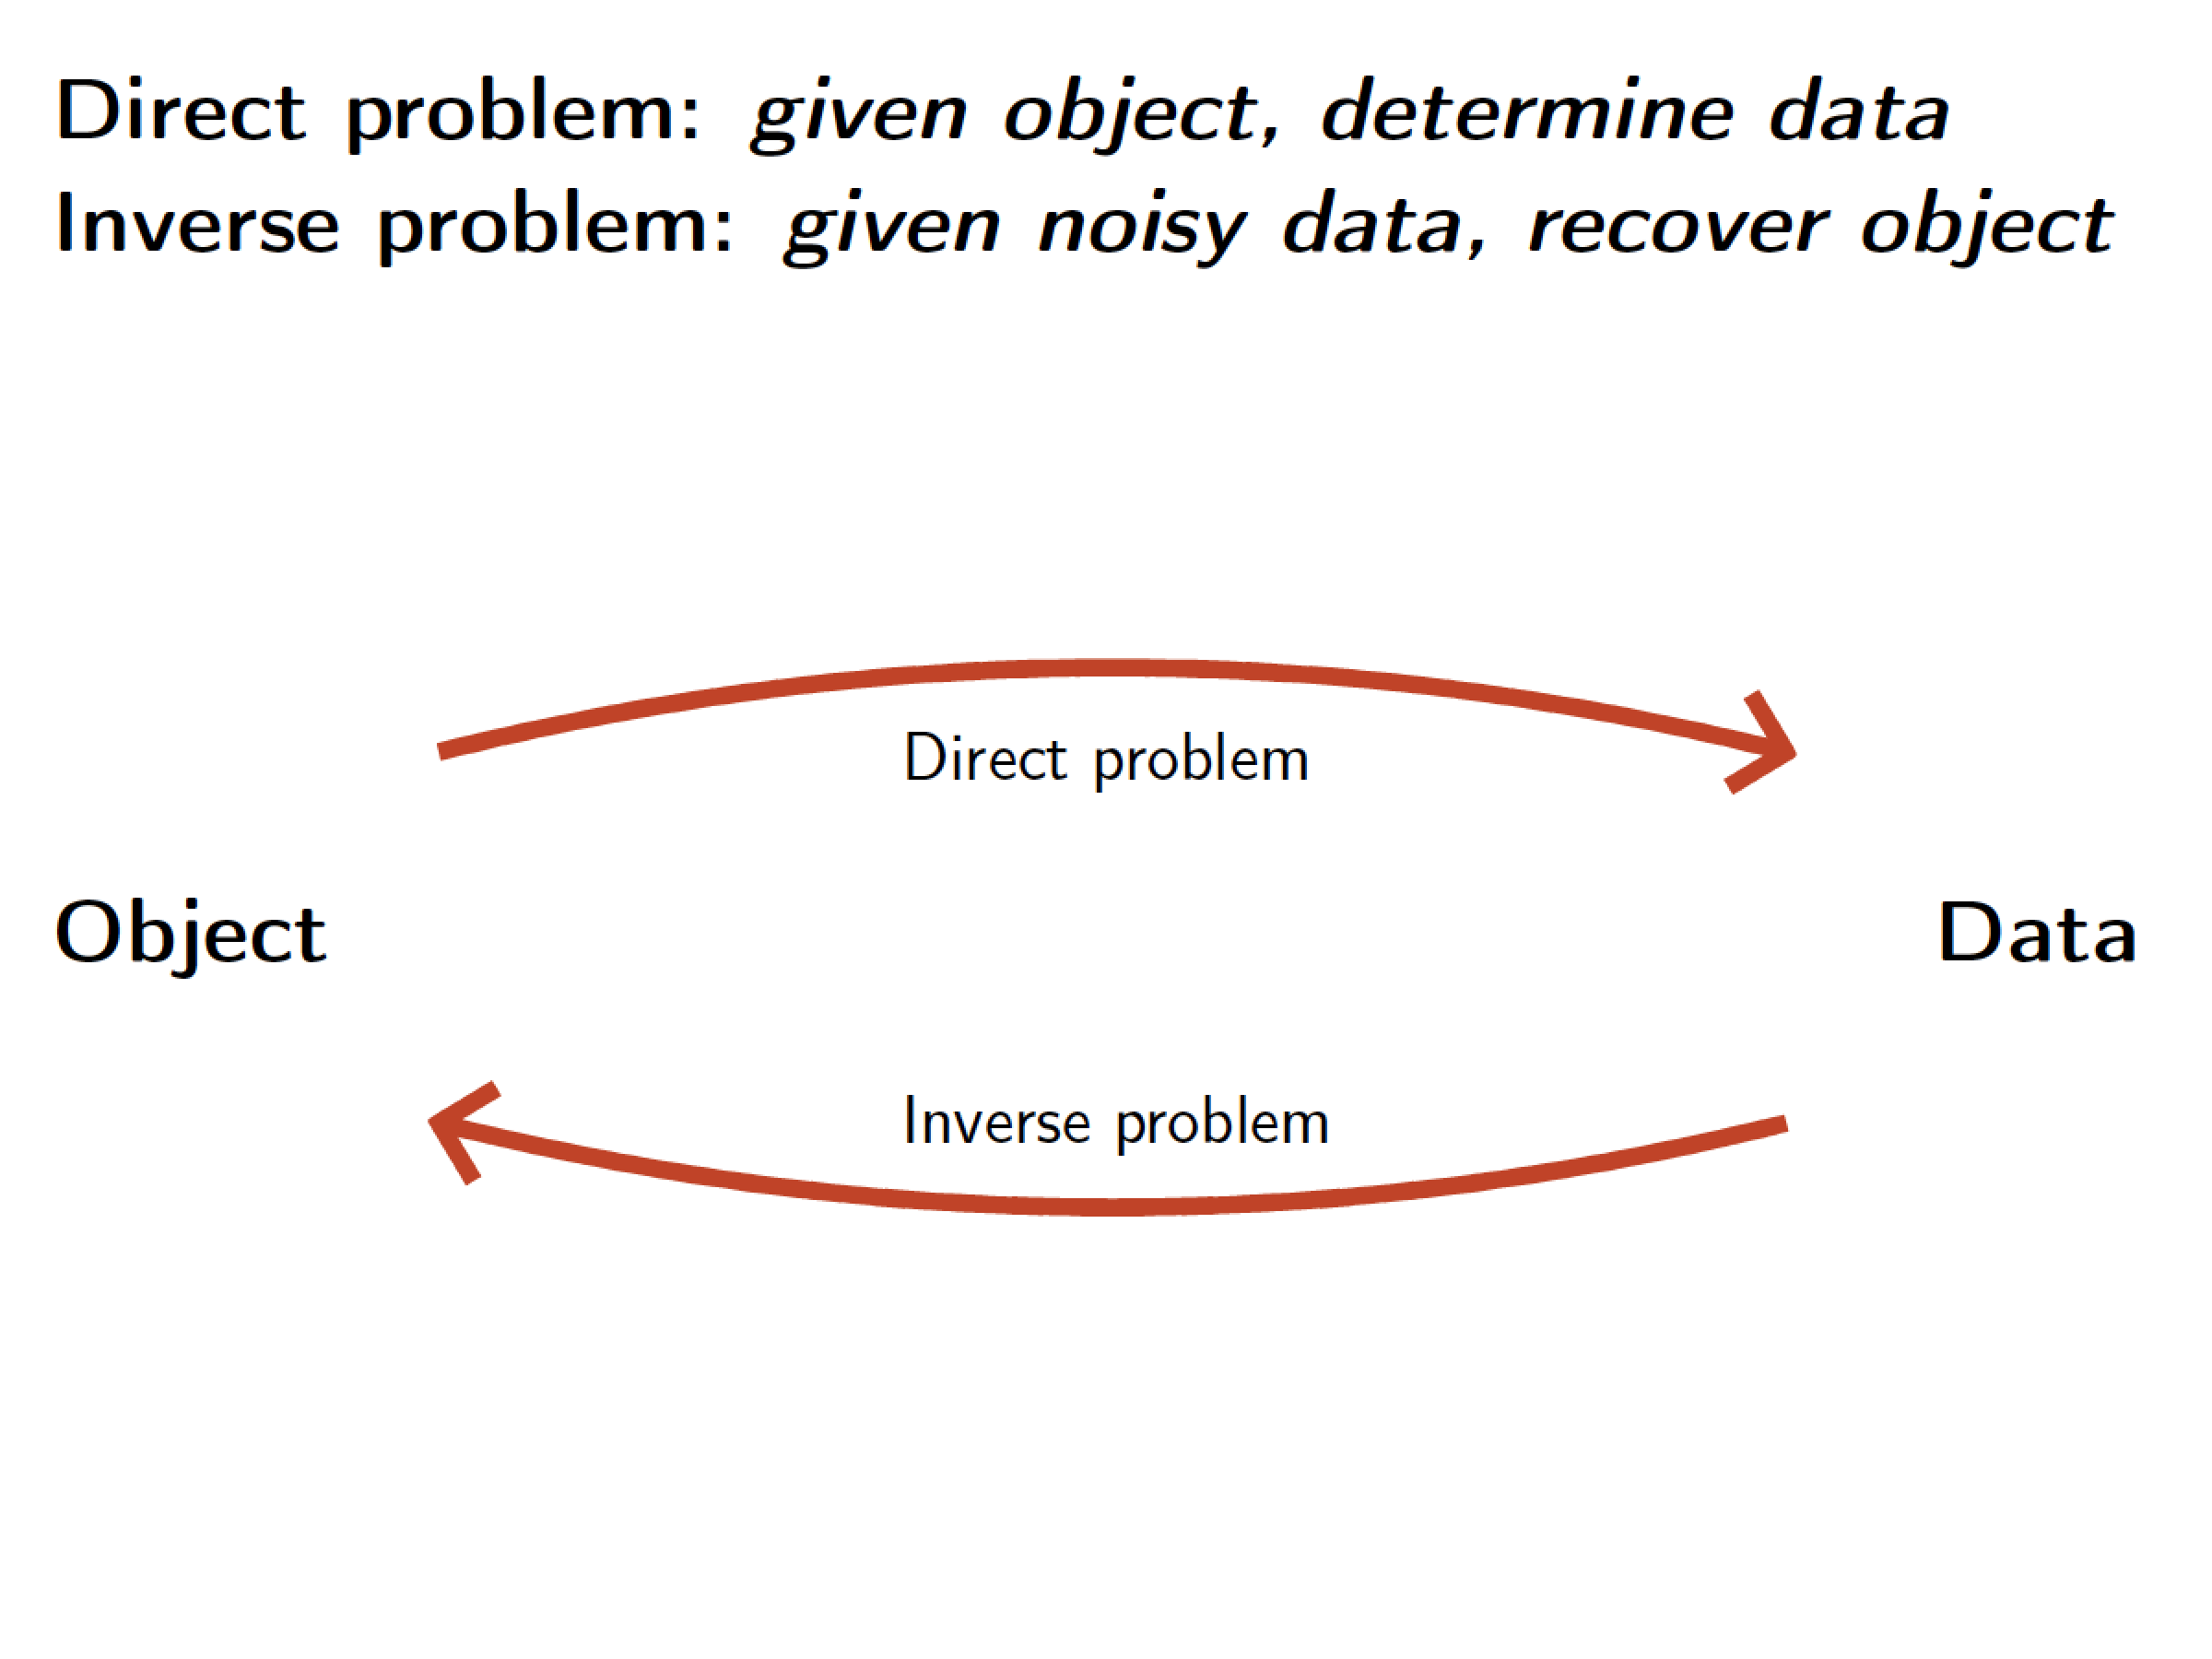 ... a direct problem, as shown in the schematic diagram below. The direct  problem is going from object to data, and the inverse problem is about  finding the ...